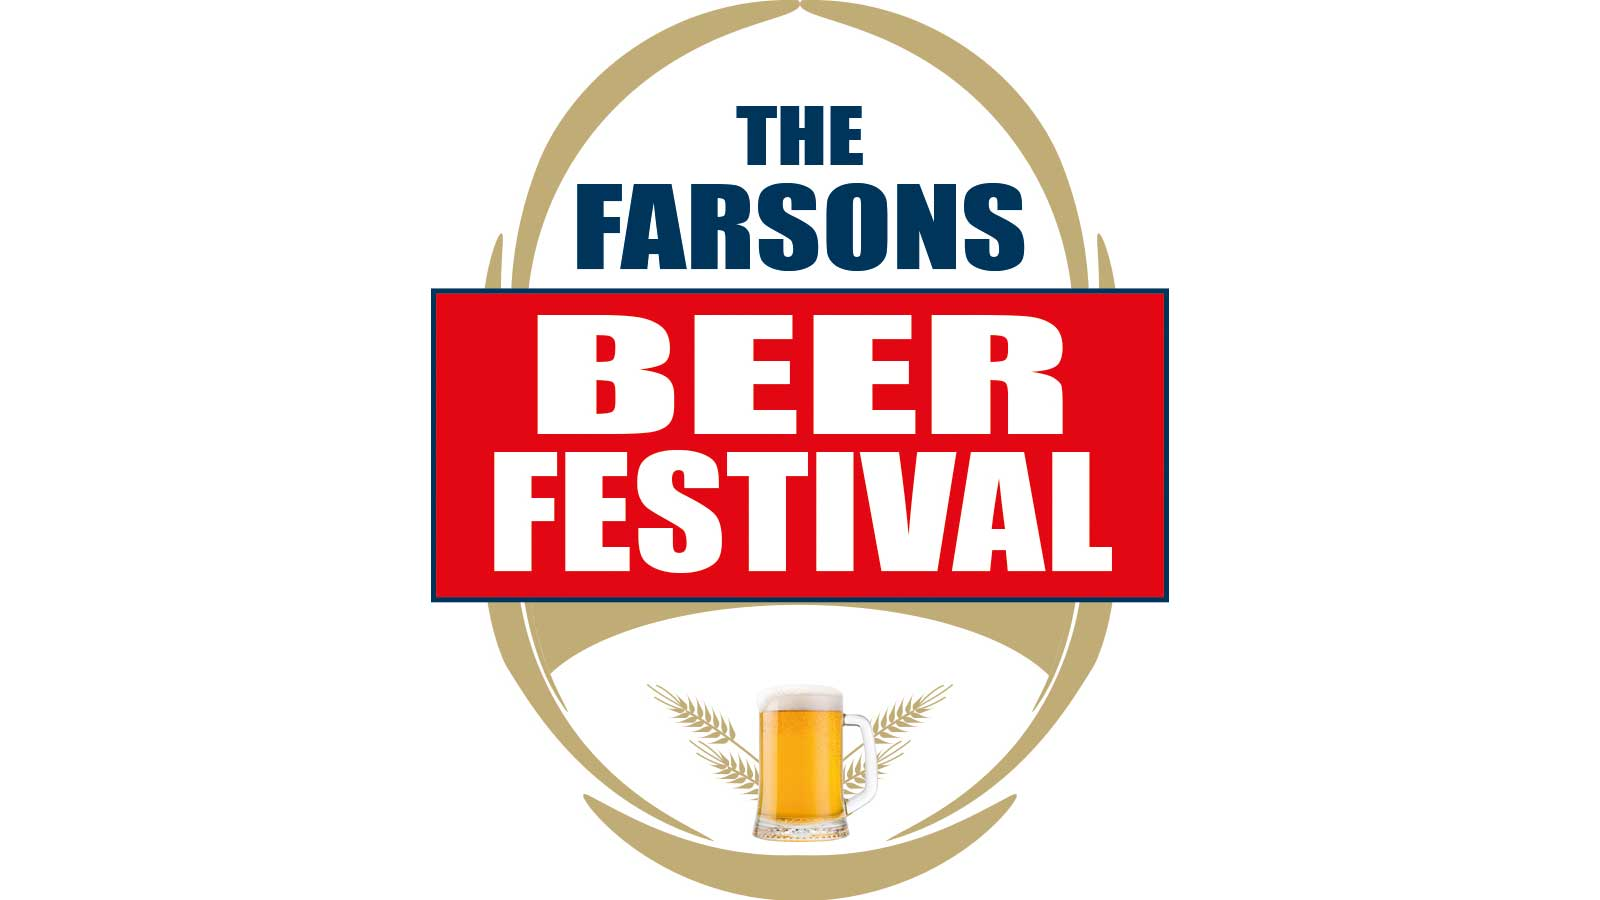 STATEMENT: Farsons Beer Festival 2020